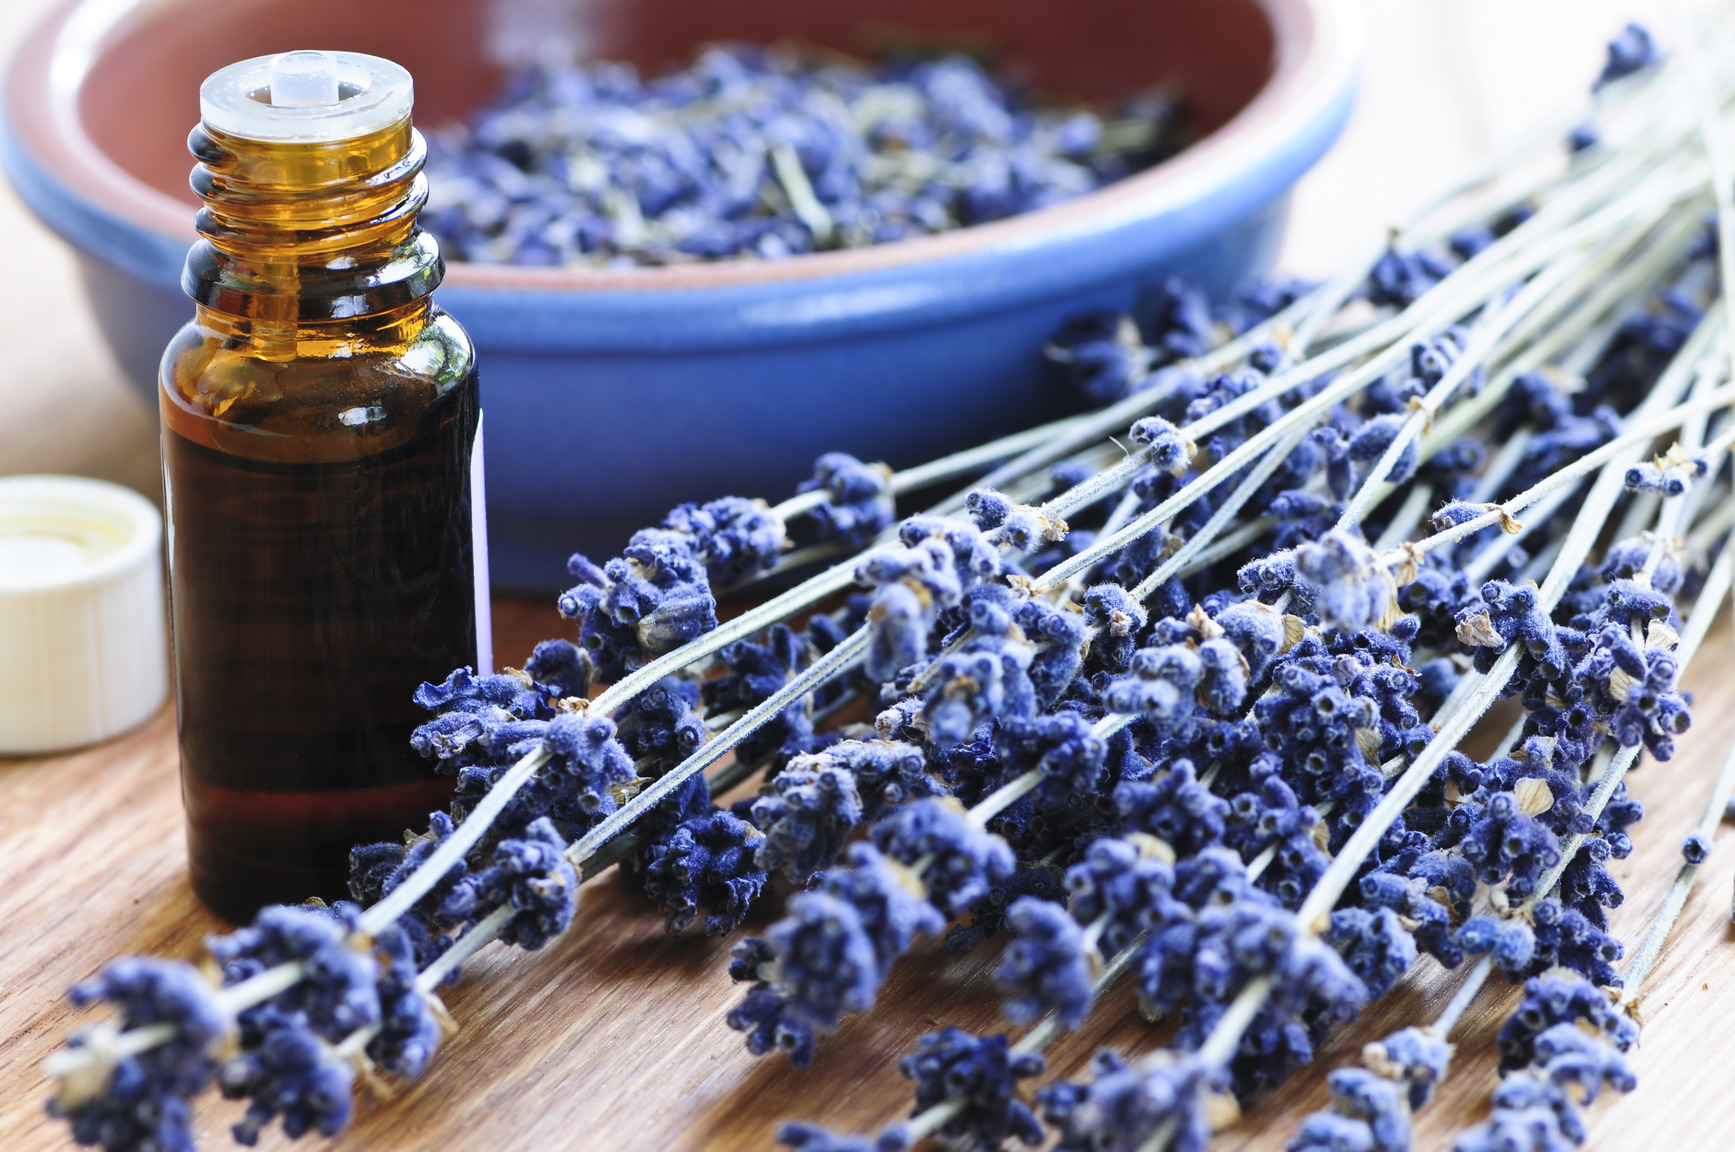 lavender-herb-and-essential-oil-m.jpg